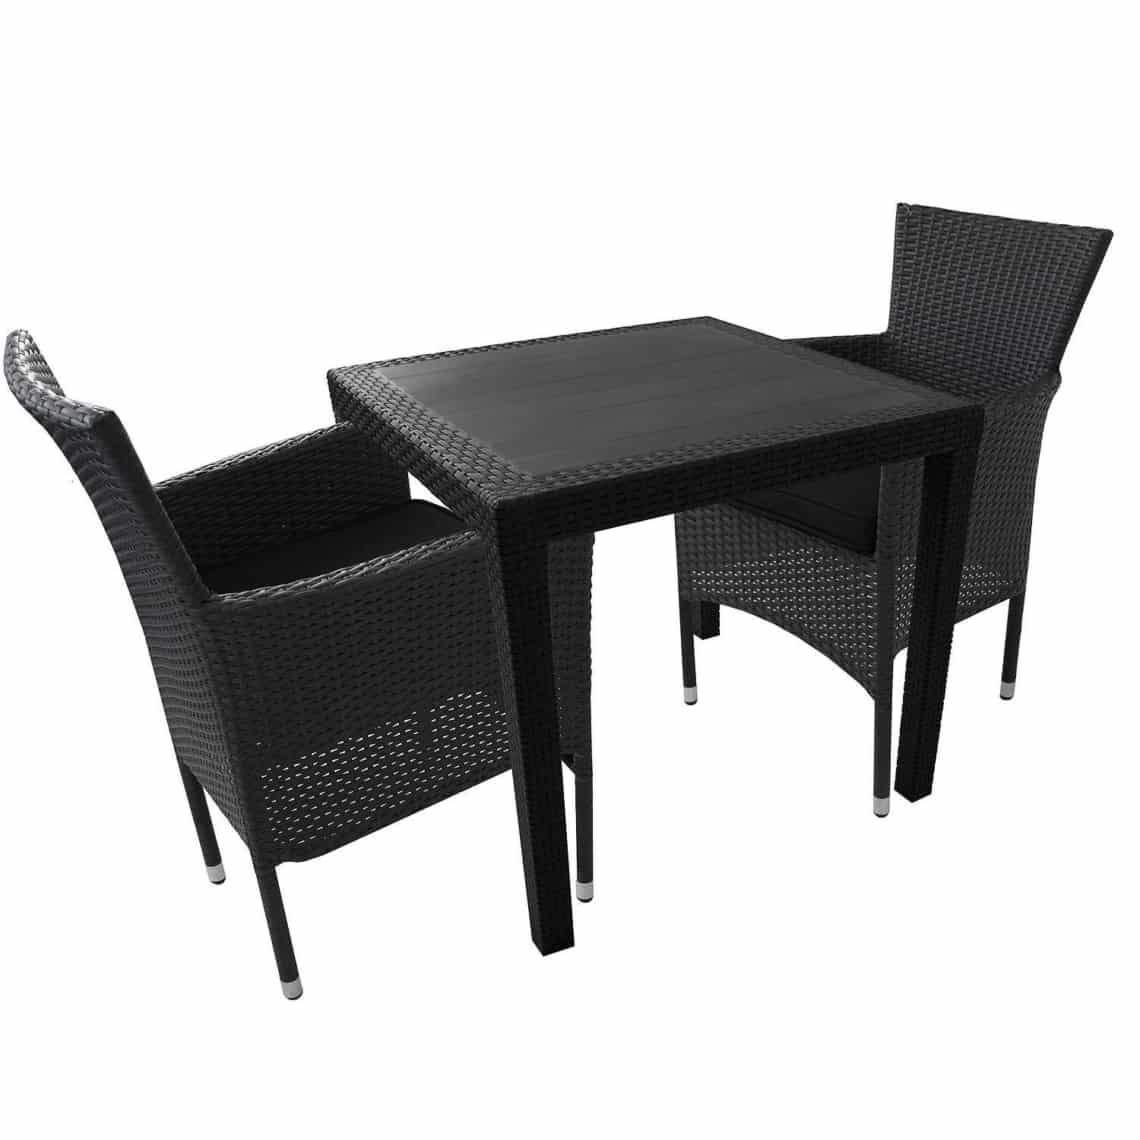 balkonm bel polyrattan set gartenmoebel. Black Bedroom Furniture Sets. Home Design Ideas